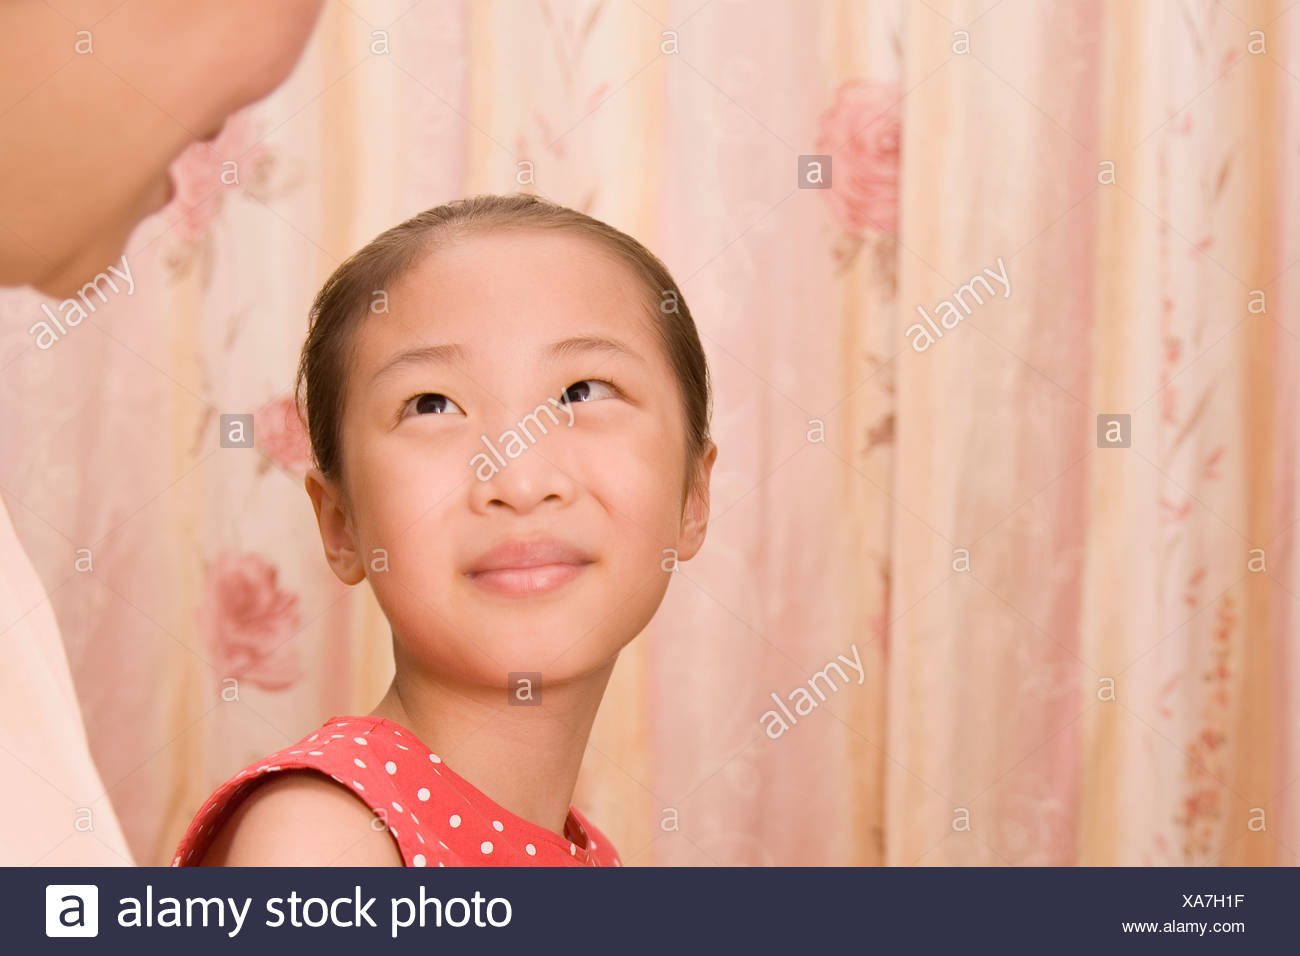 Close-up of a girl looking at her grandmother and smiling - Stock Image